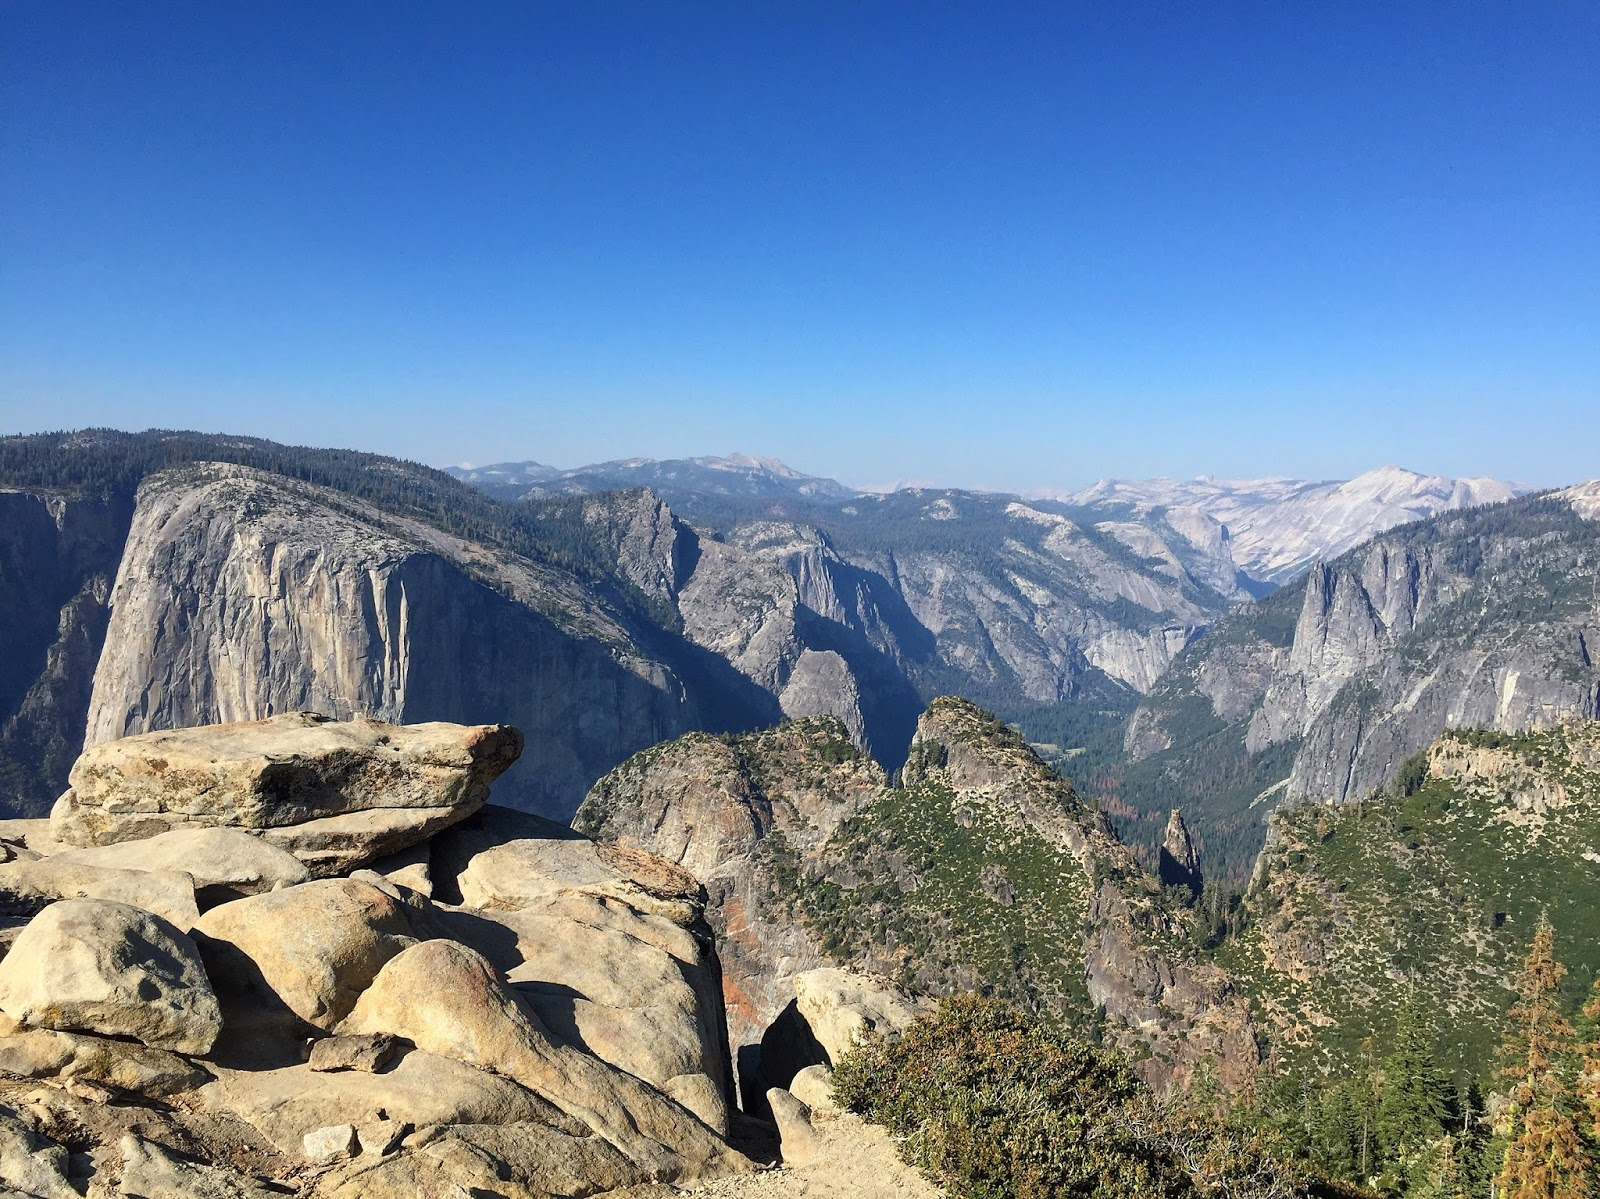 Yosemite hiking guide